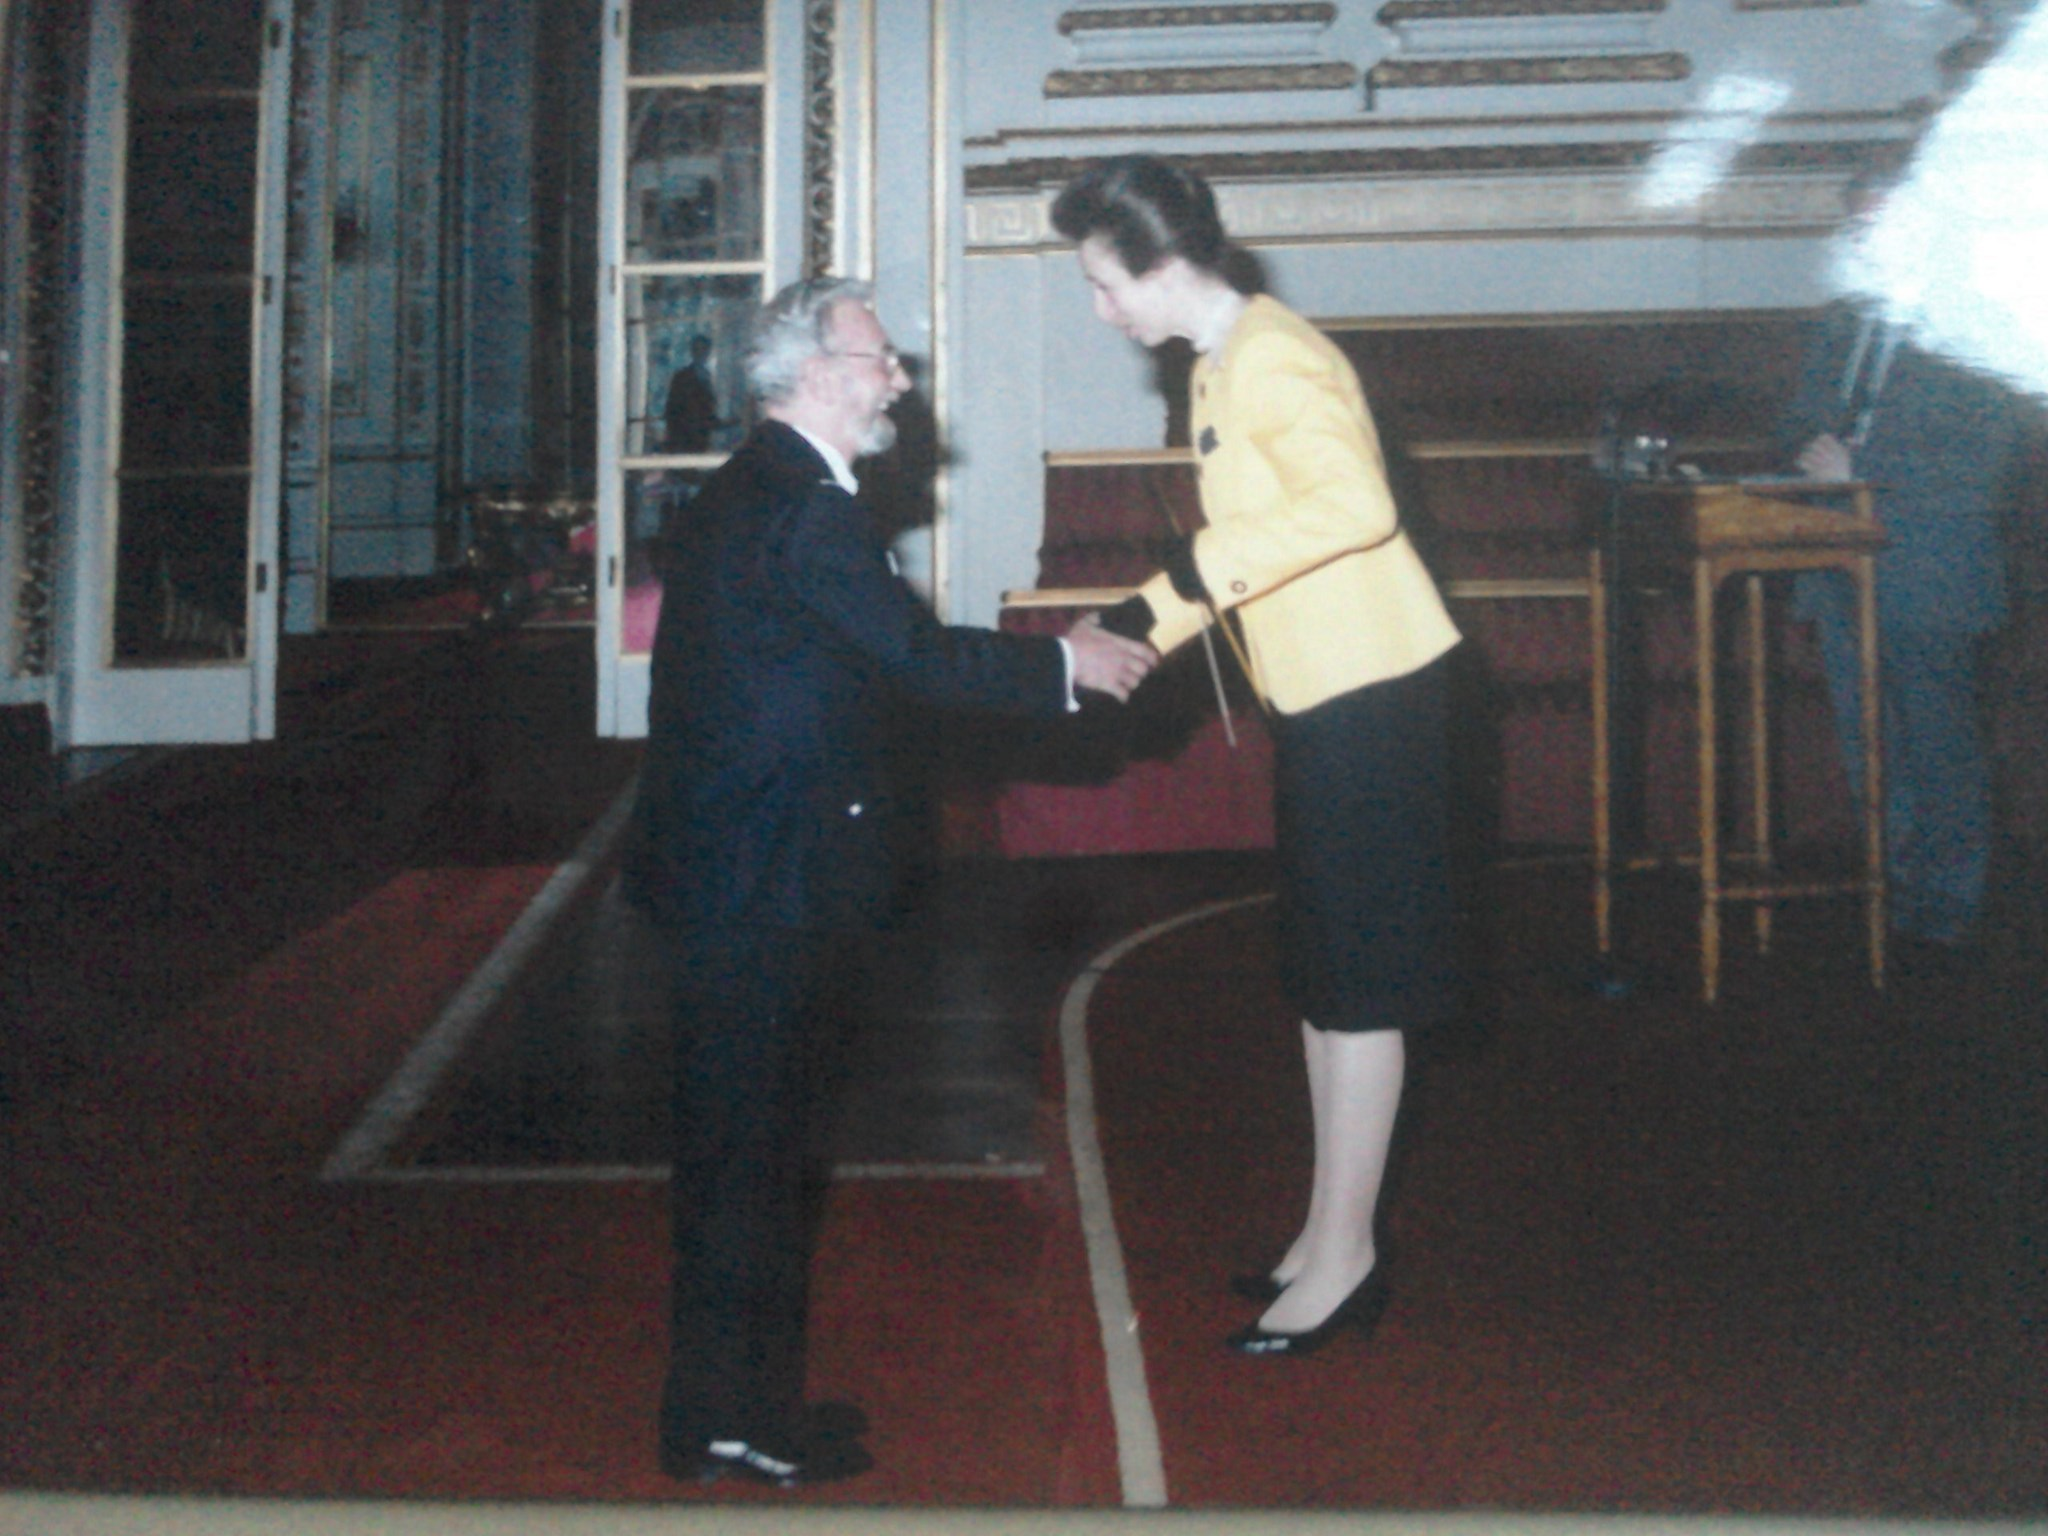 Tony being presented with the Butler Award by Princess Anne